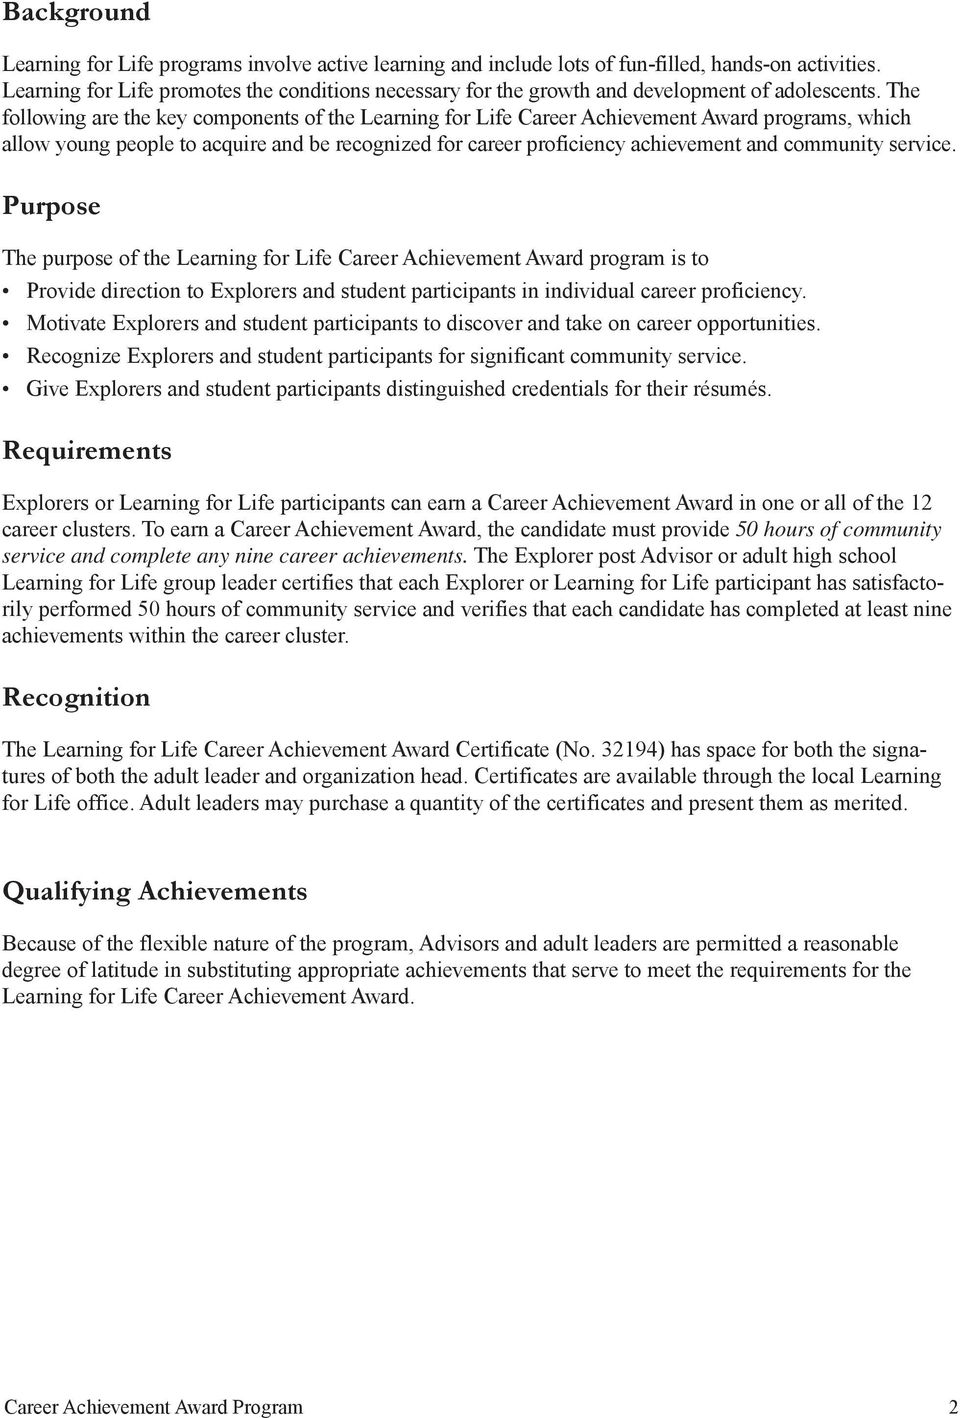 The following are the key components of the Learning for Life Career Achievement Award programs, which allow young people to acquire and be recognized for career proficiency achievement and community